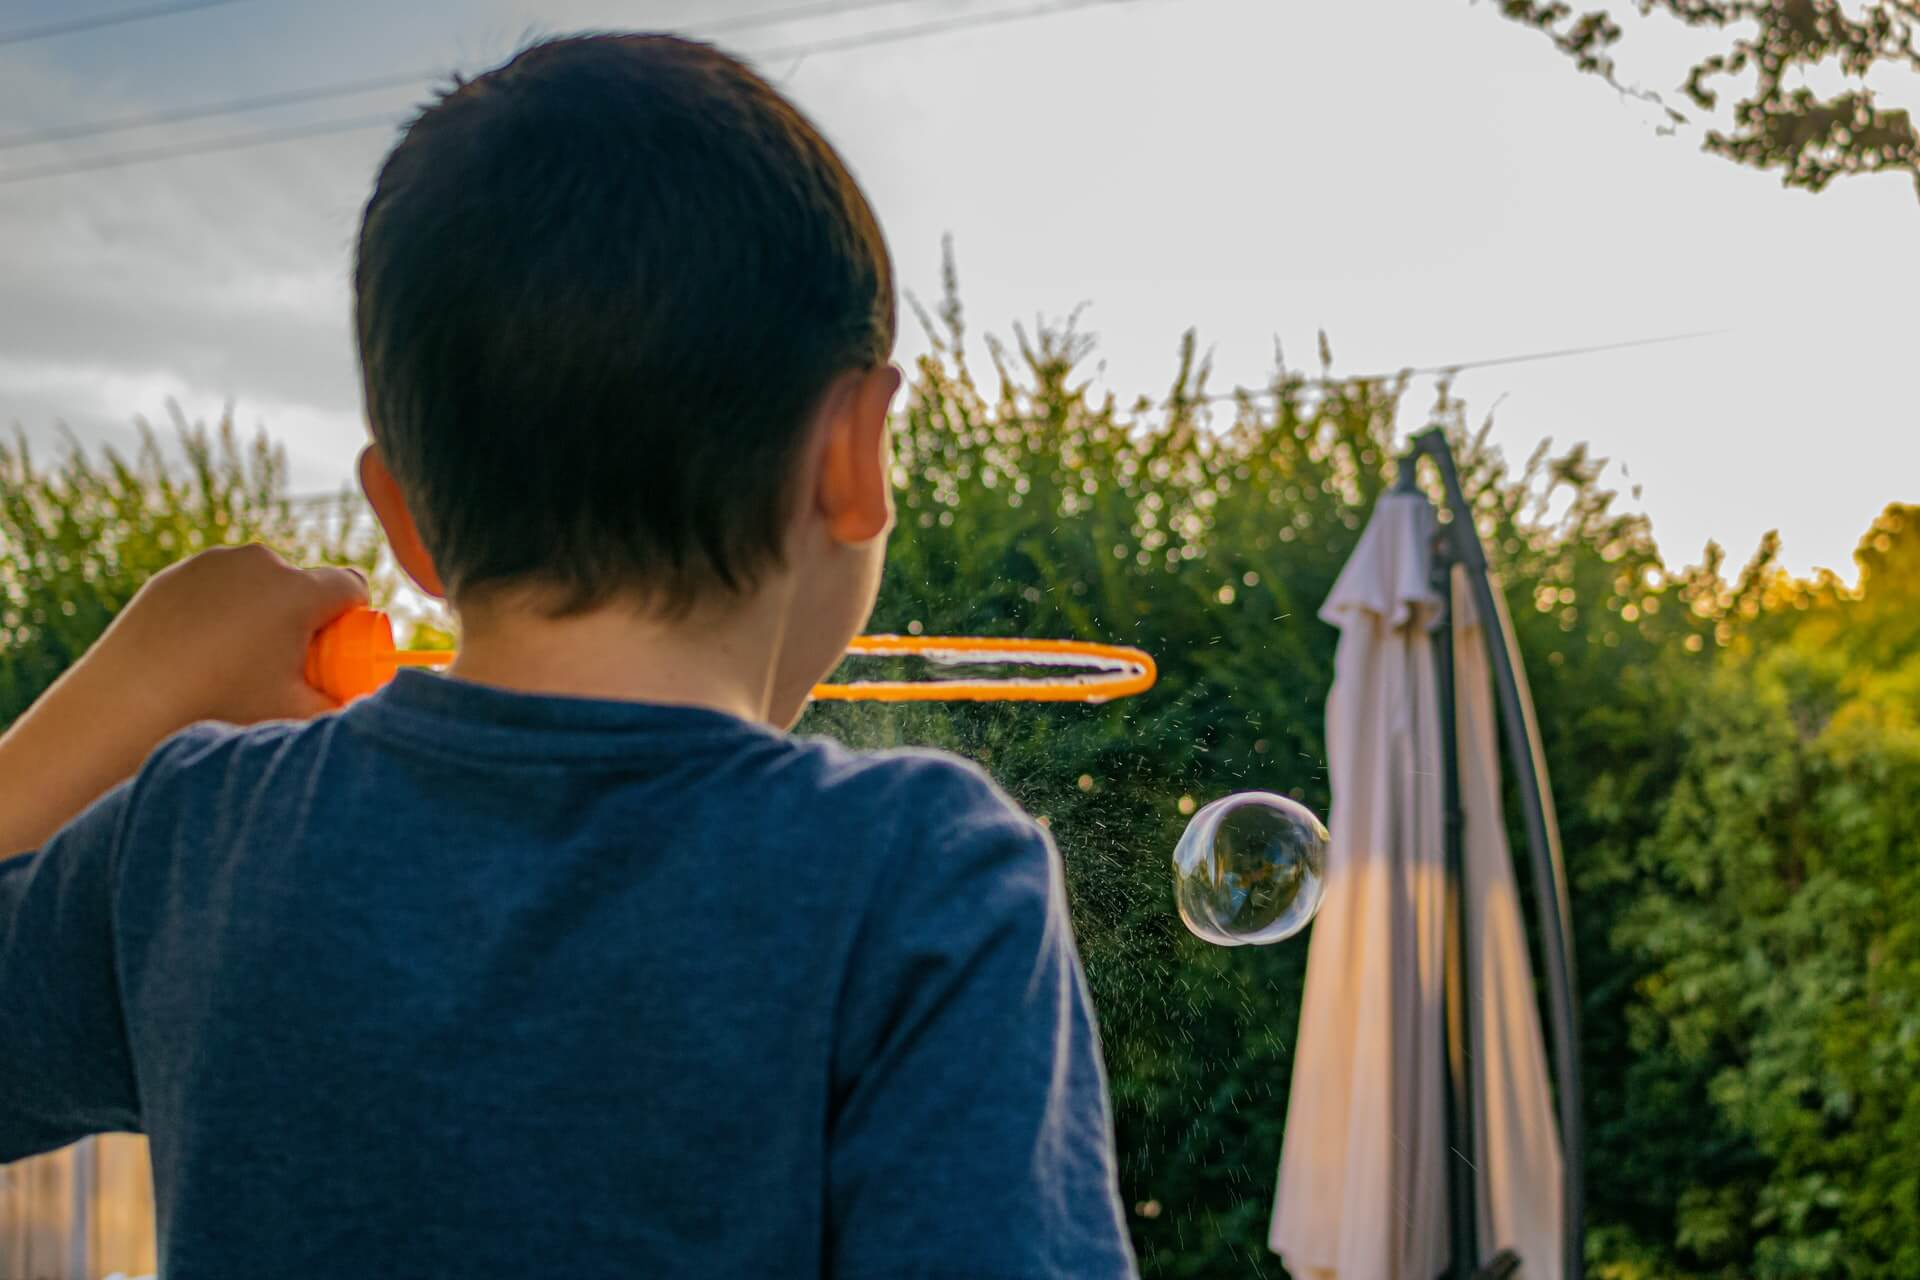 Back of boy in blue shirt of blowing bubbles through giant orange bubble ring in backyard with blurred closed umbrella beyond